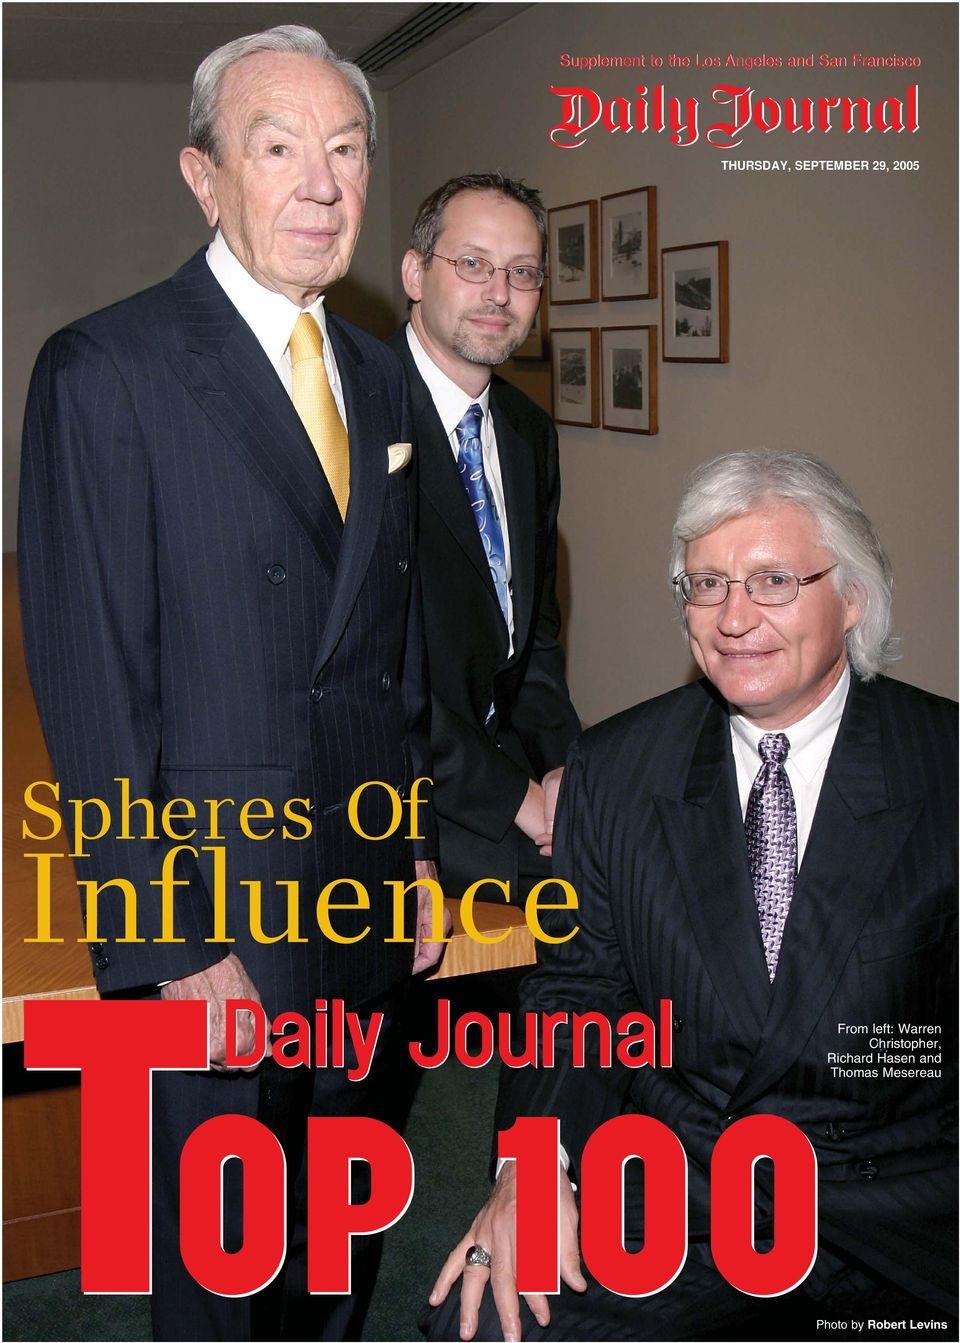 Daily Journal From left: Warren Christopher,